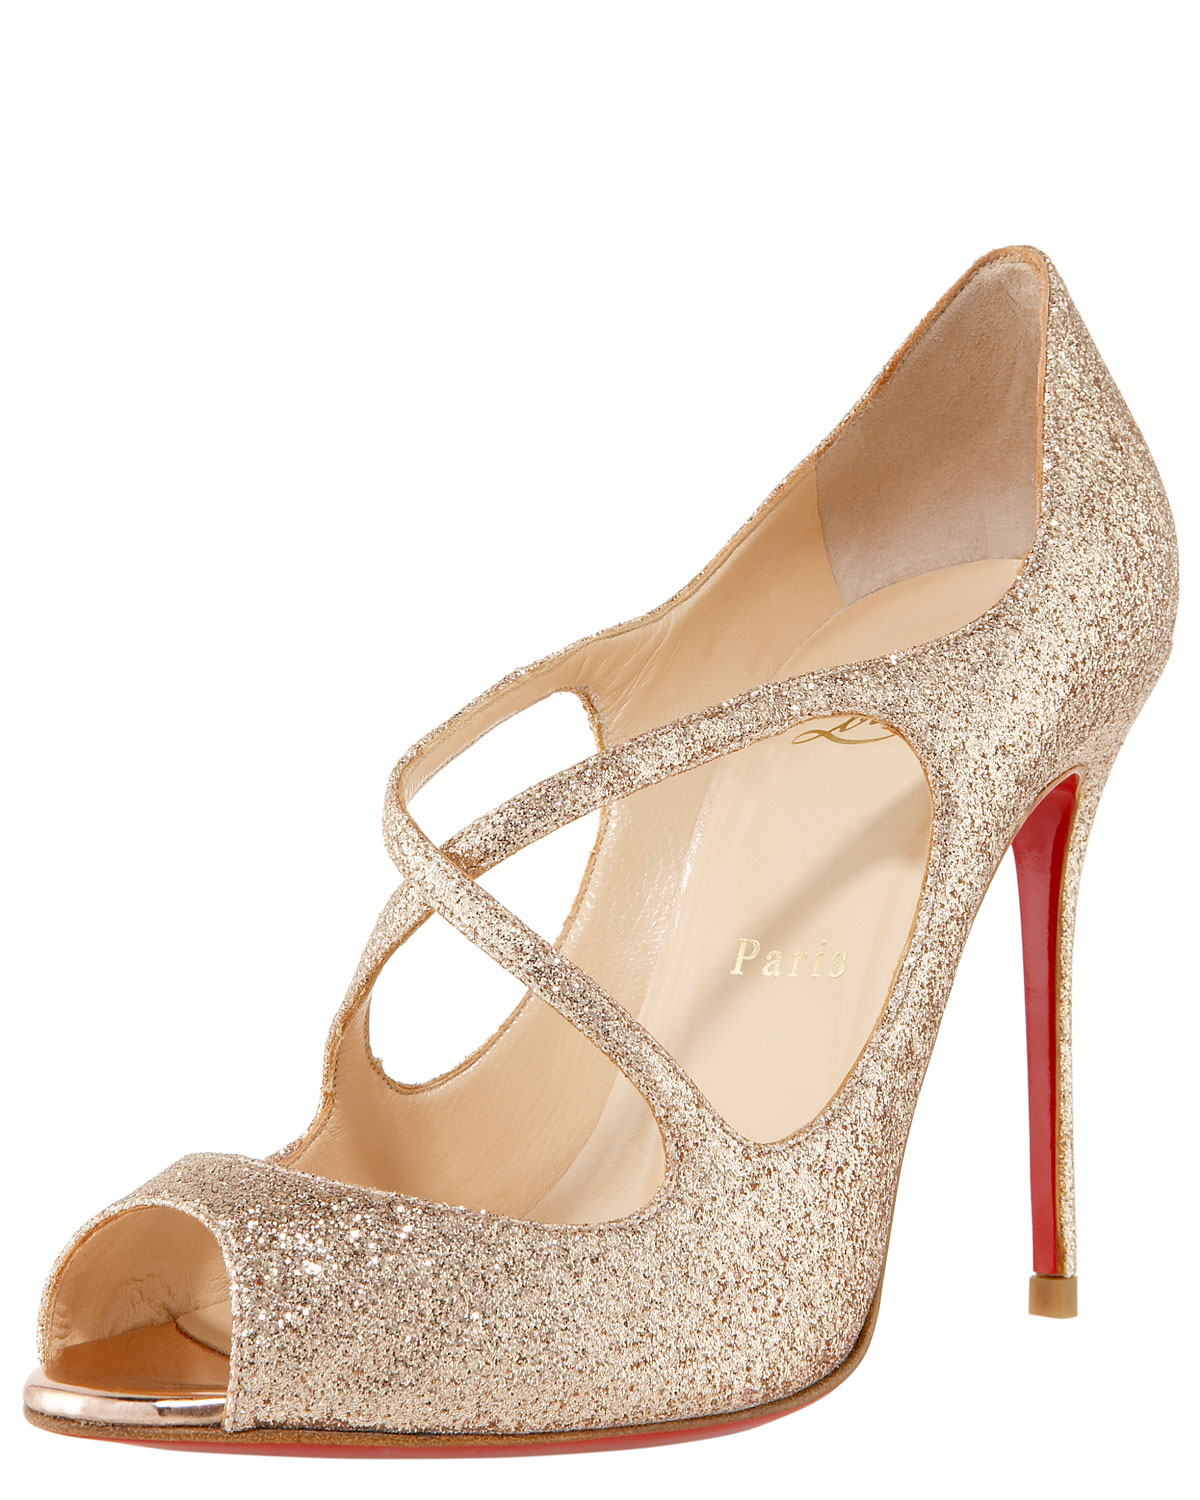 gold sparkly christian louboutin shoes